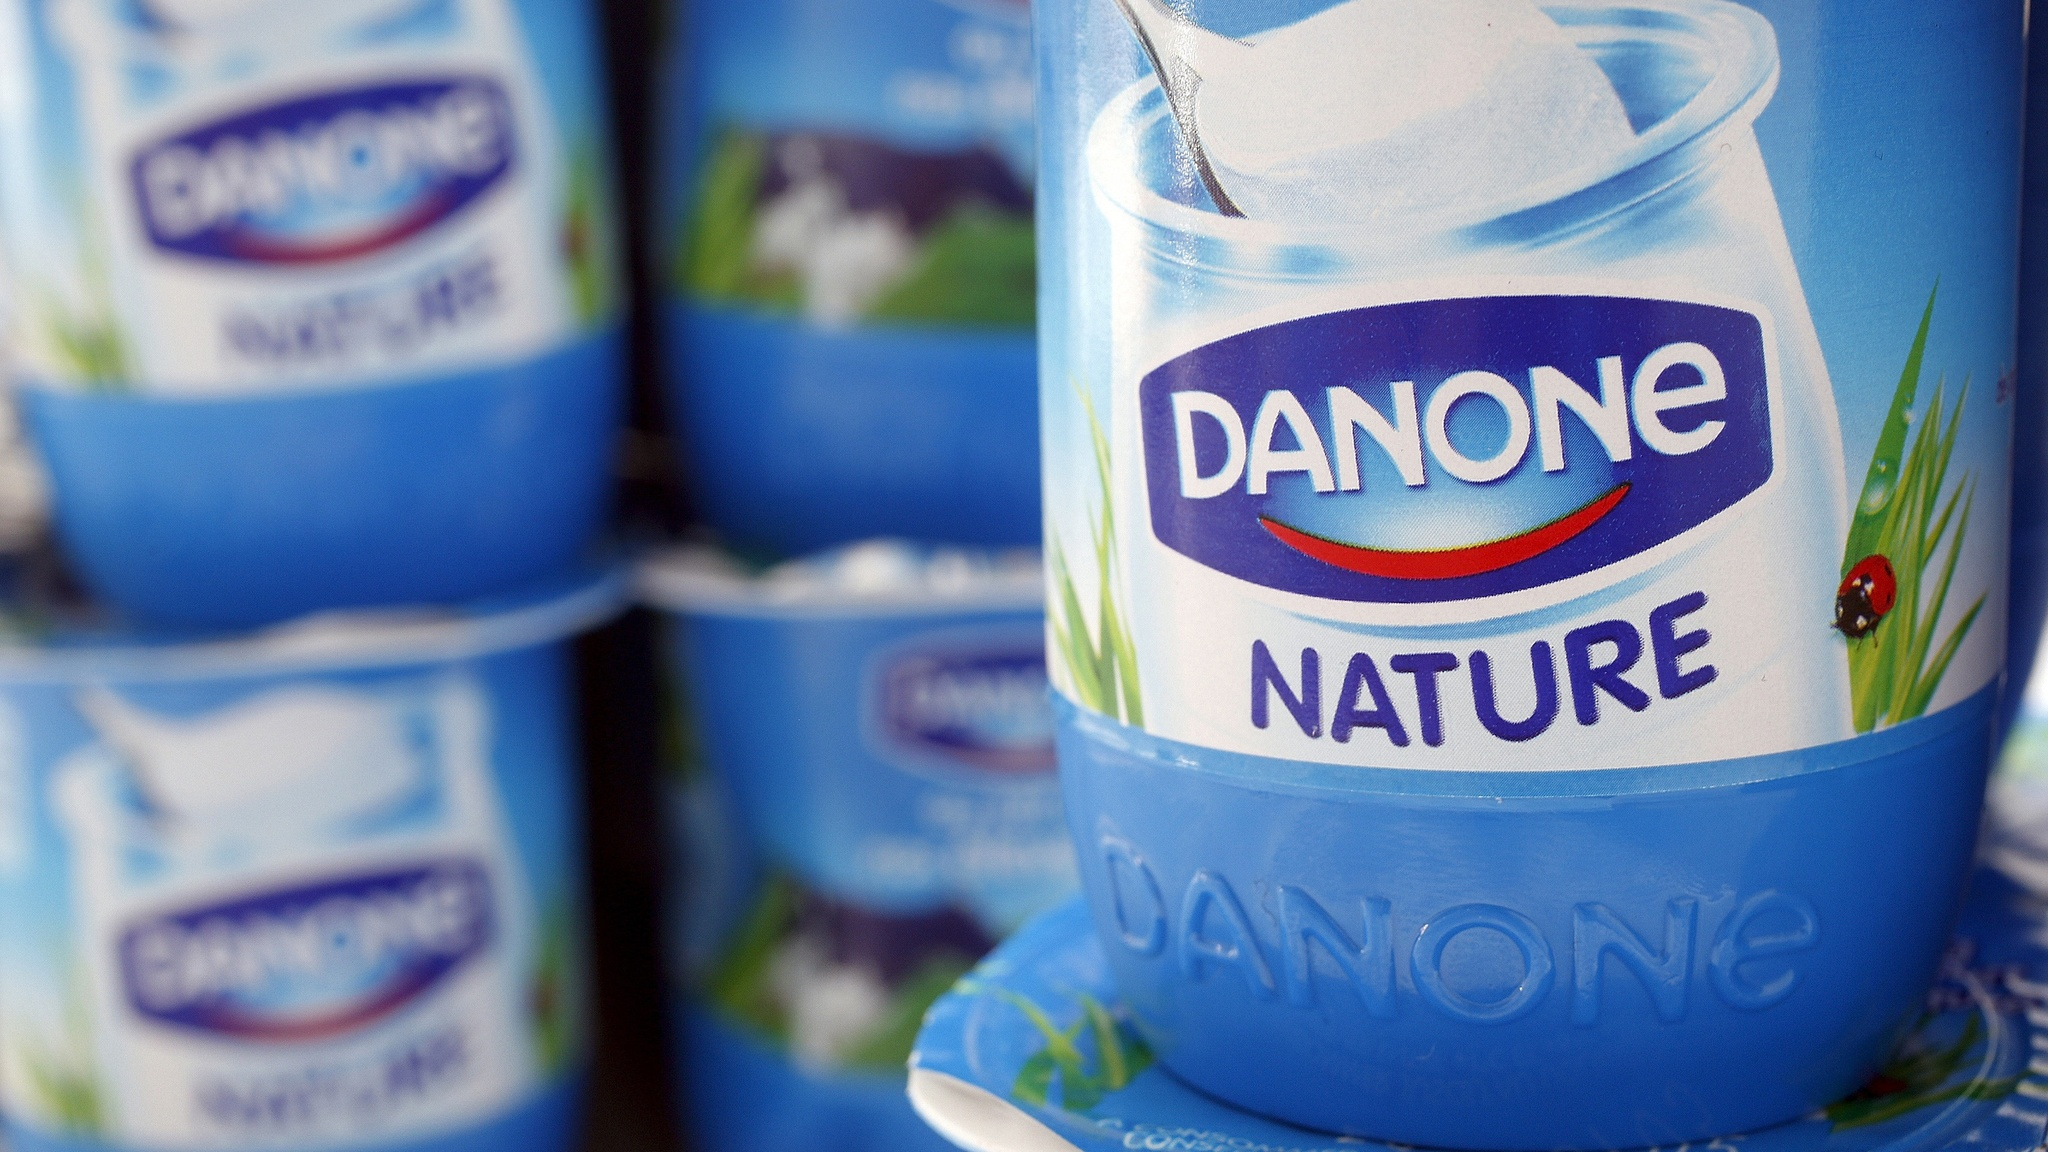 Baby food and water units help lift Danone sales